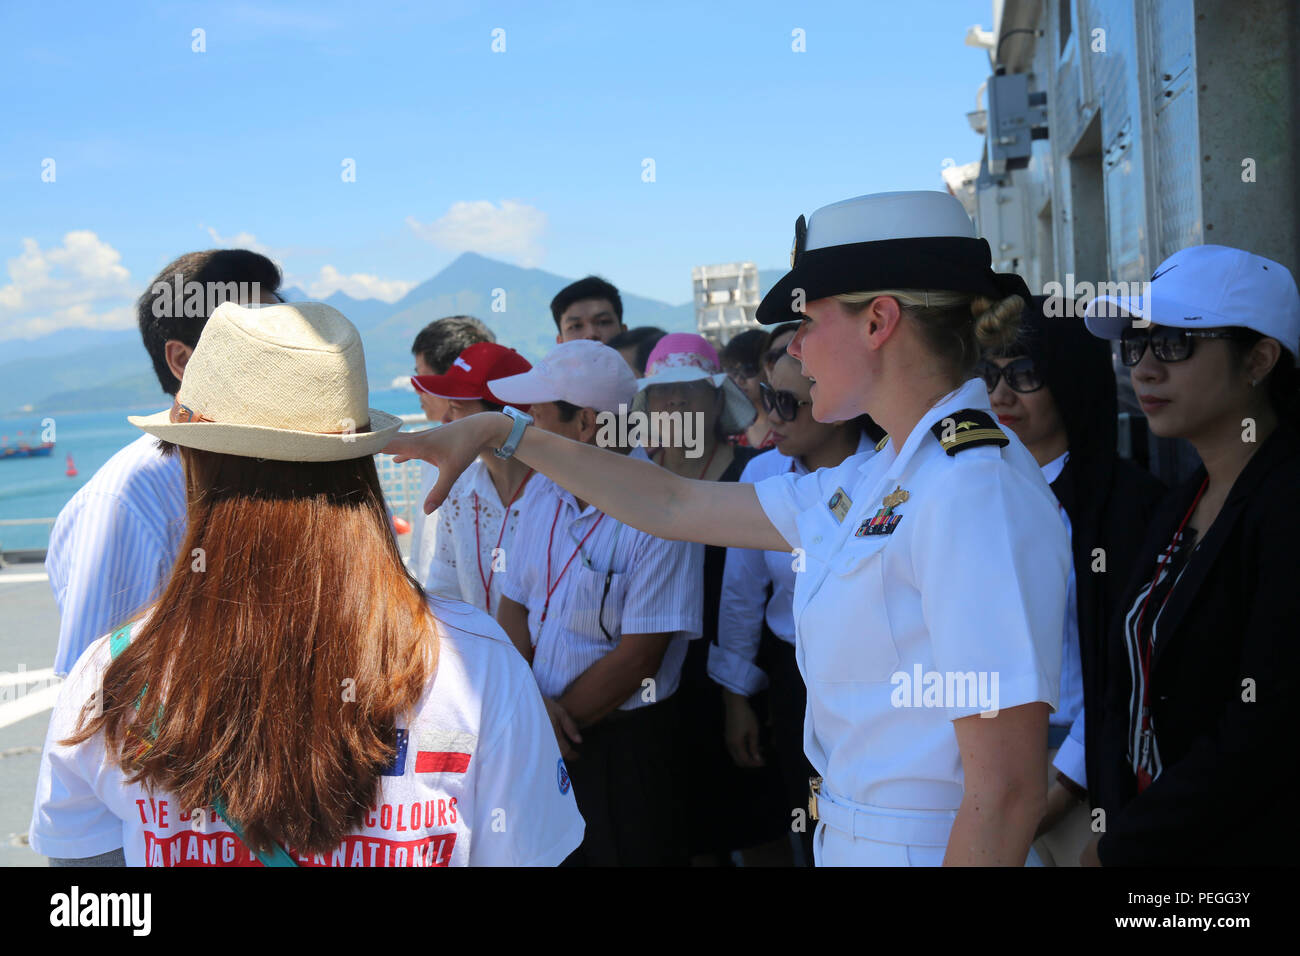 150820-M-GO800-056 DA NANG, Vietnam (Aug. 20, 2015) – Lt. Chelsea Irish explains to local Vietnamese officials the function of the flight deck aboard the Military Sealift Command joint high speed vessel USNS Millinocket (JHSV 3) during a ship tour Aug. 20. Task Force Forager, embarked aboard the Millinocket  is serving as the secondary platform for Pacific Partnership, led by an expeditionary command element from the Navy's 30th Naval Construction Regiment (30 NCR) from Port Hueneme, Calif. Now in its 10th iteration, Pacific Partnership is the largest annual multilateral humanitarian assistanc - Stock Image